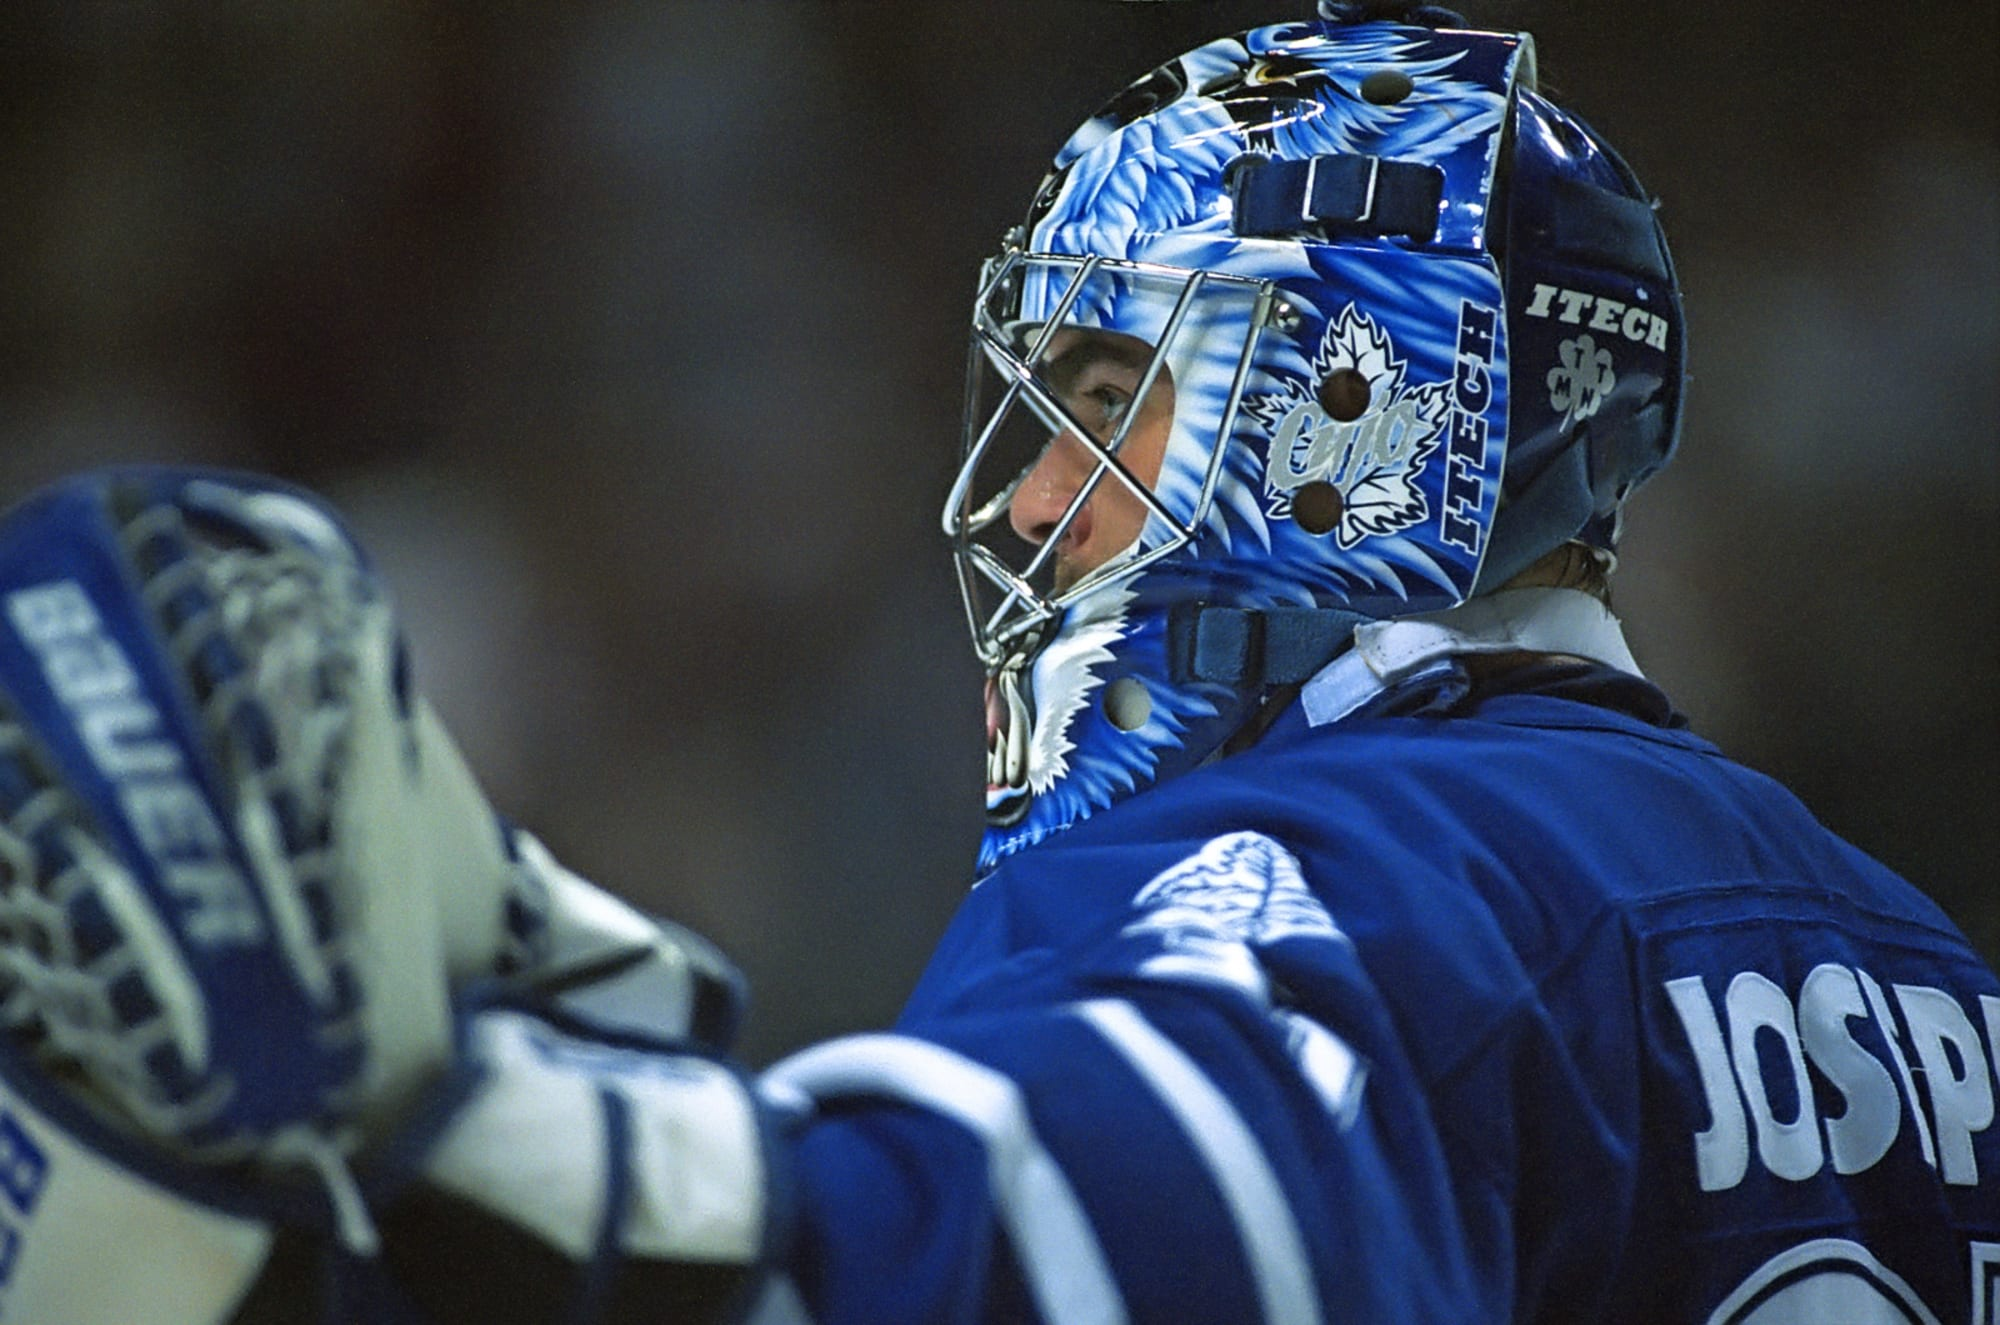 Toronto Maple Leafs: Curtis Joseph will miss out on Hall of Fame again